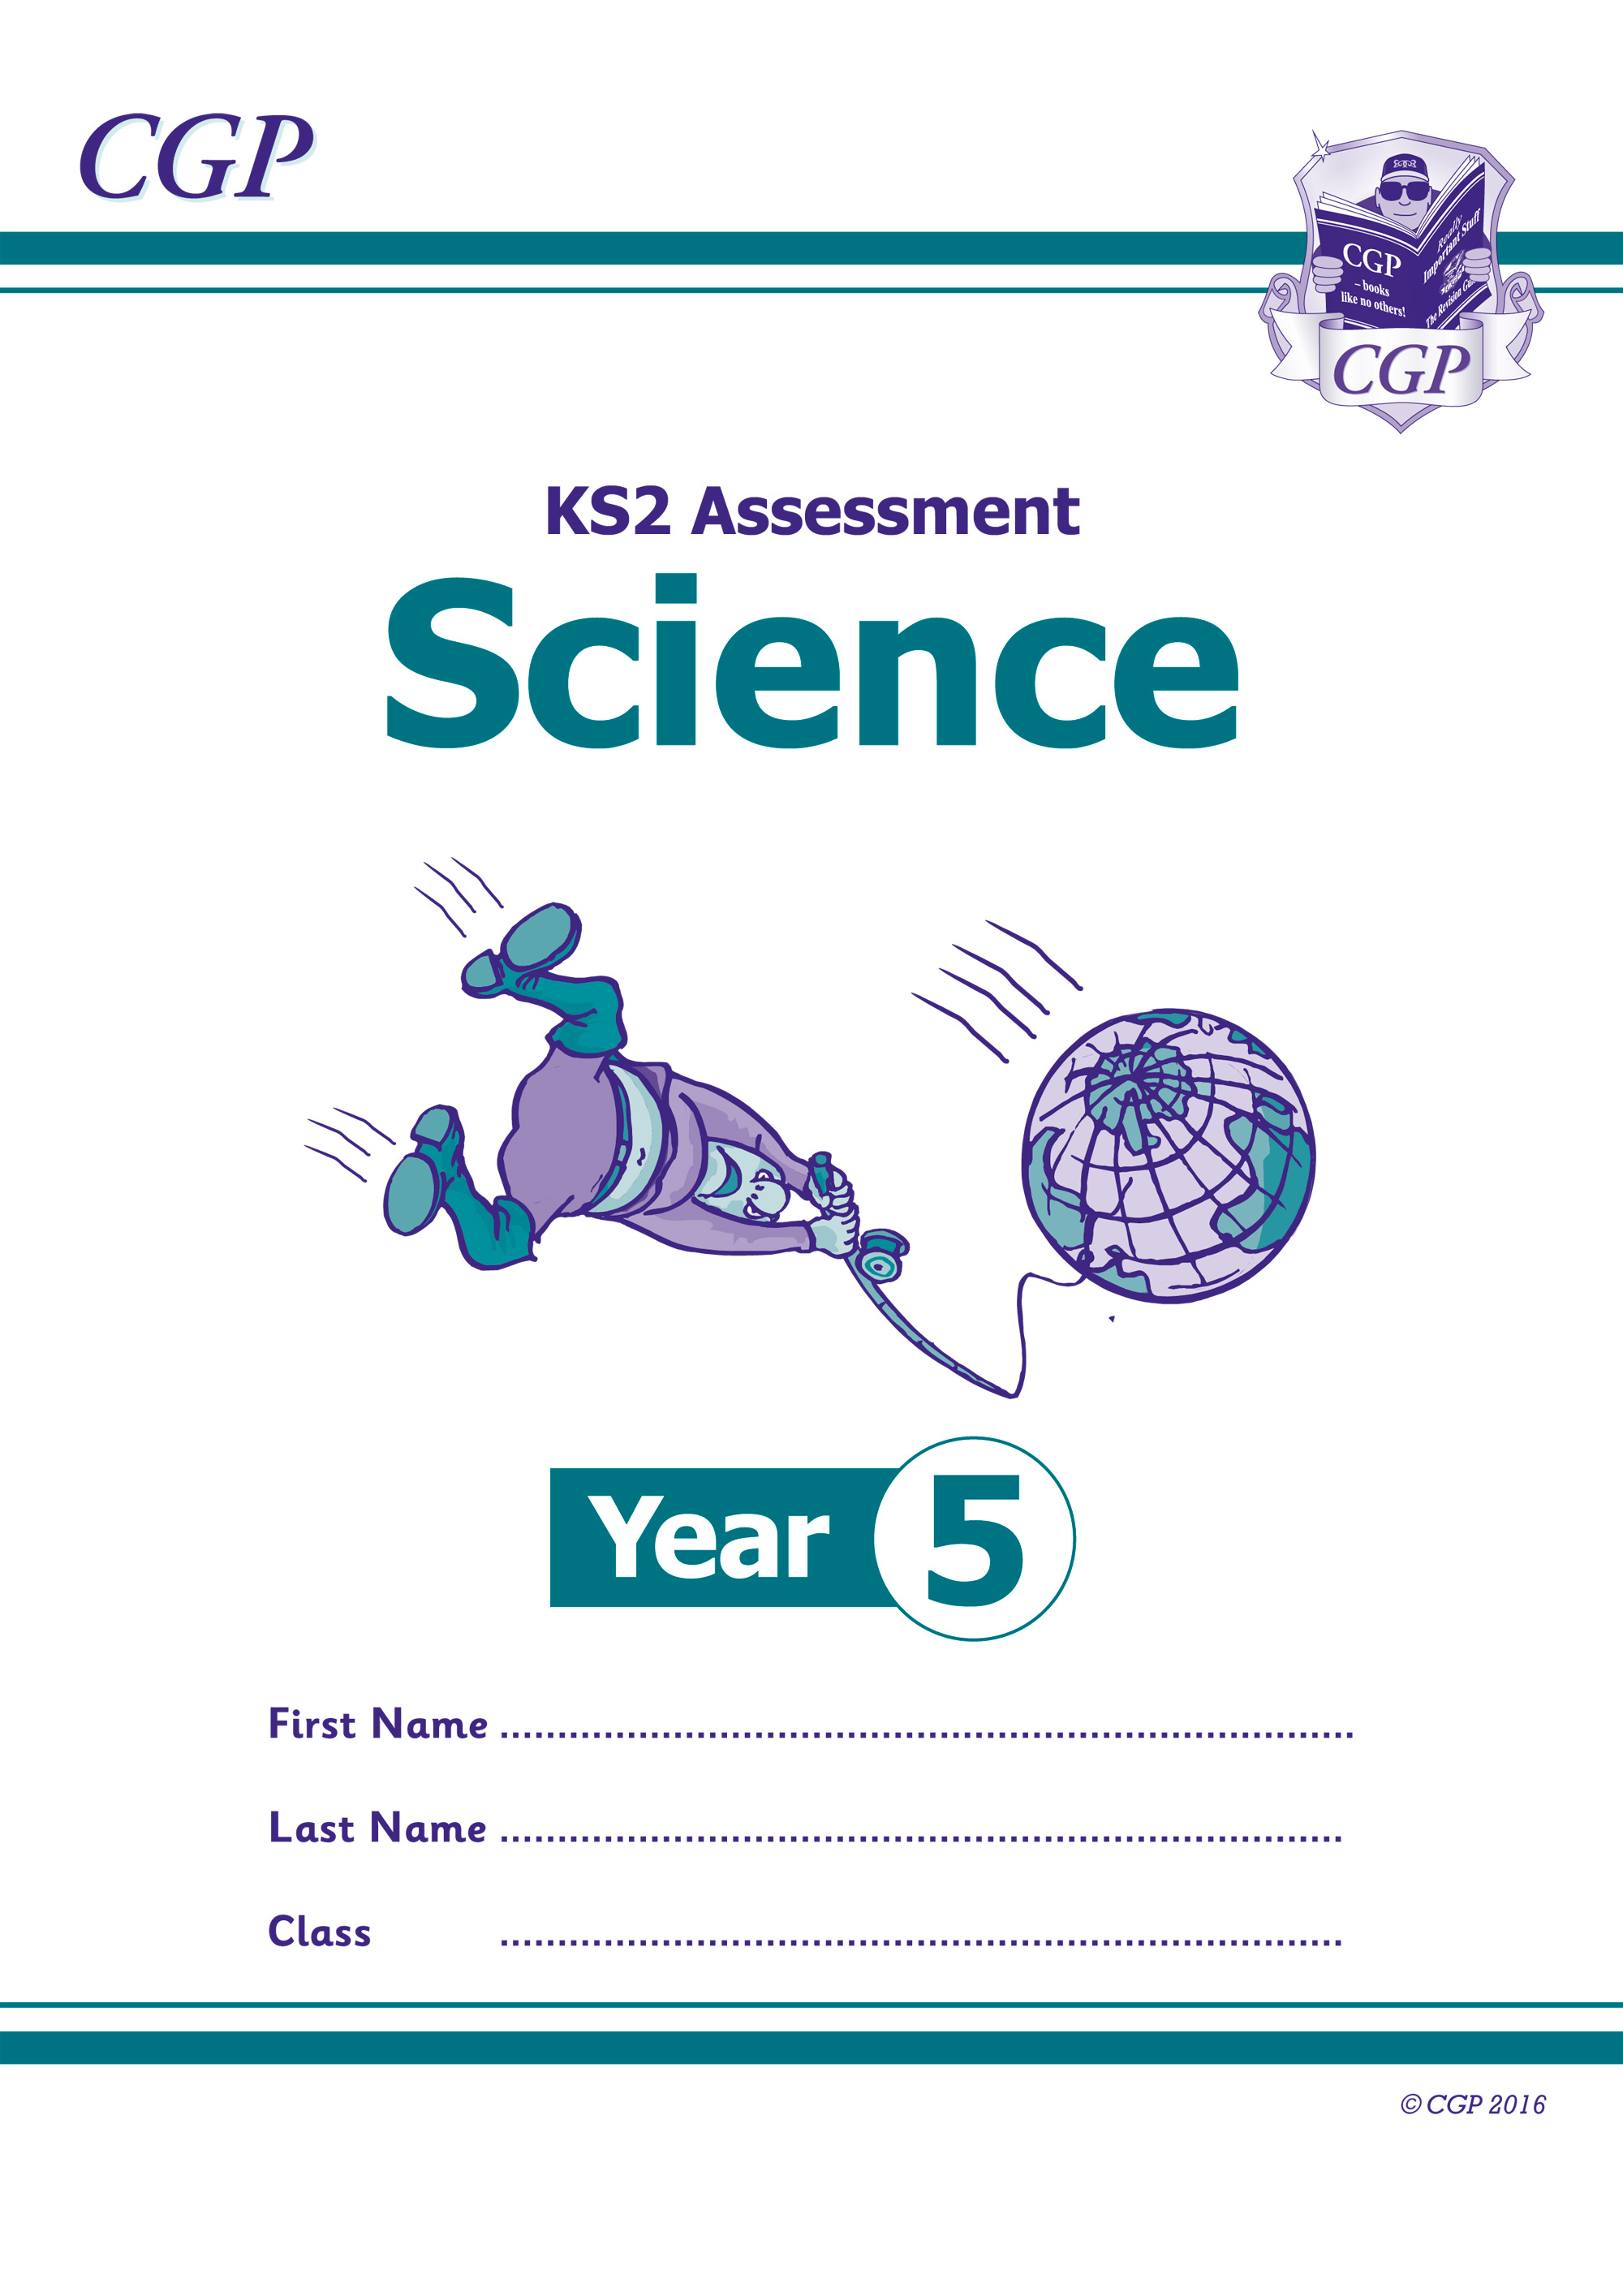 S5P21 - KS2 Assessment: Science - Year 5 Test